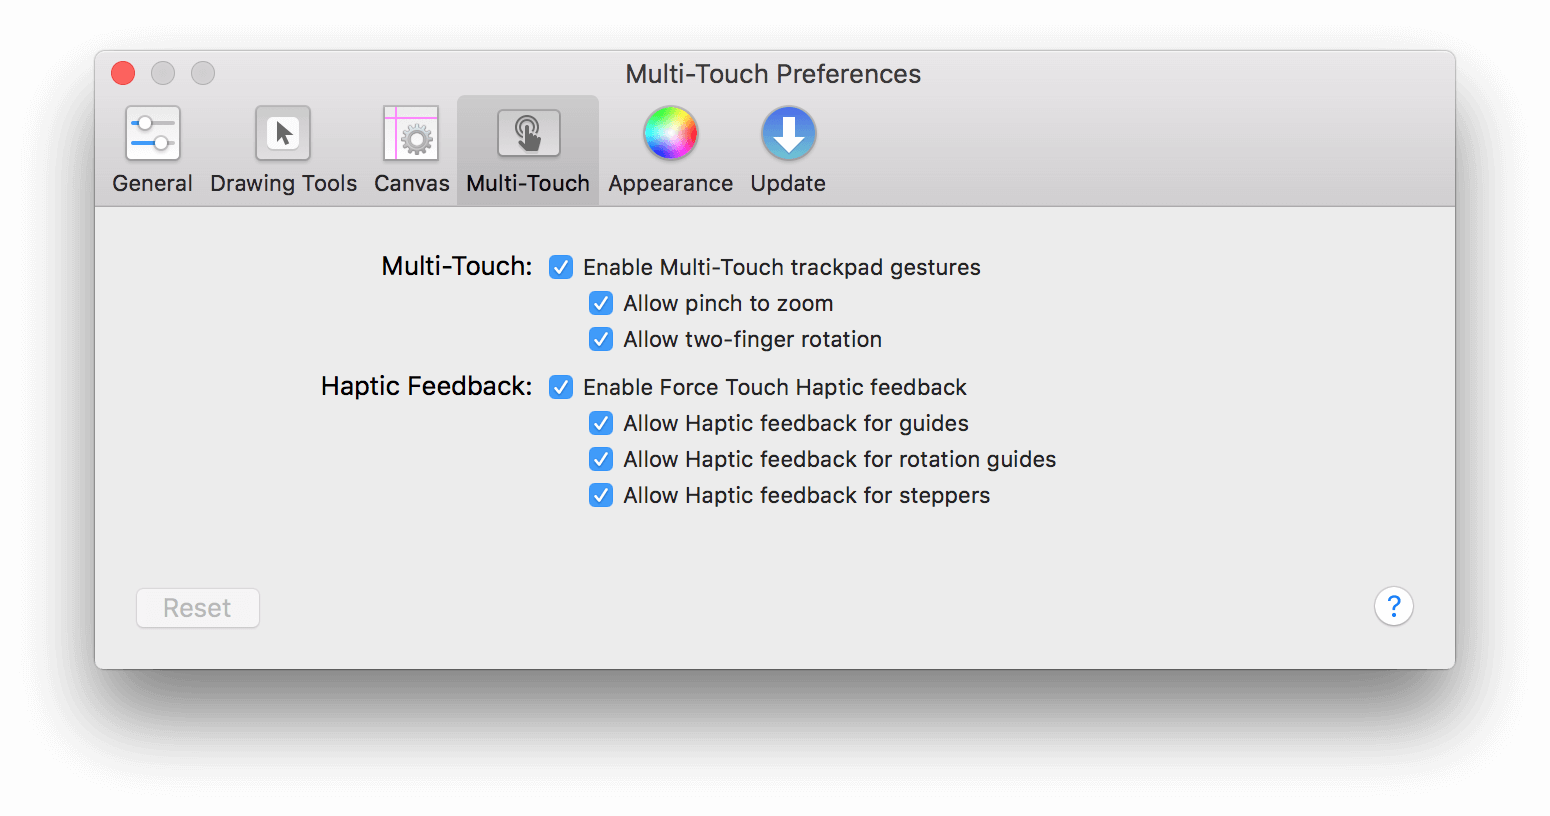 The Multi-Touch Preferences panel